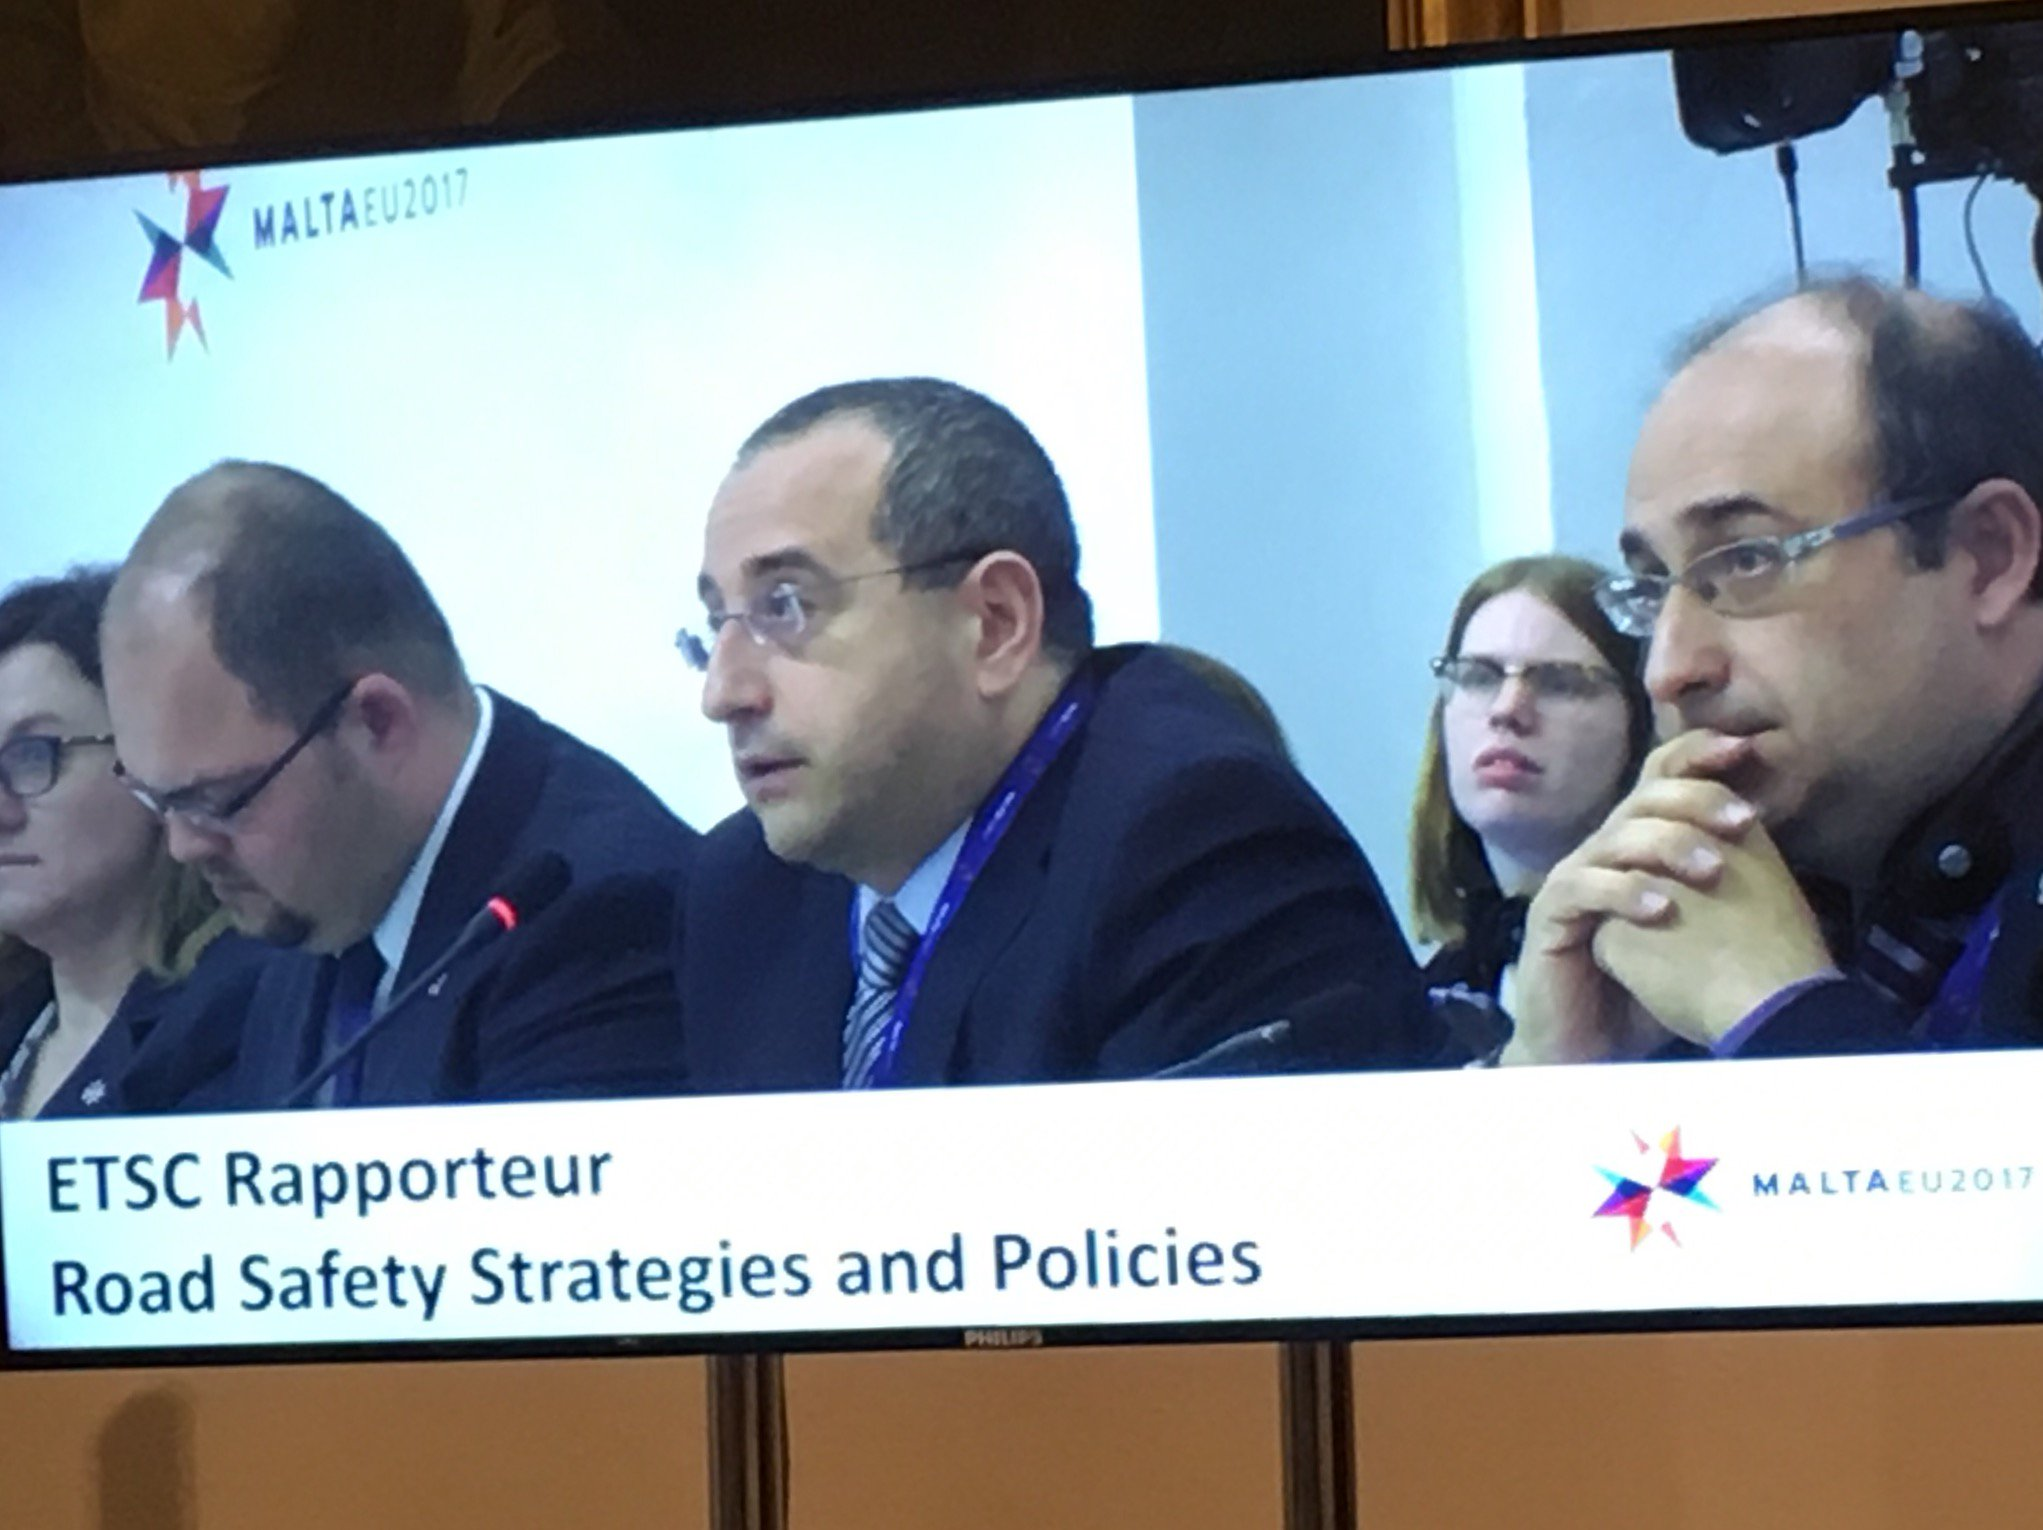 Antonio Avenoso of ETSC urges transport ministers to commit to new targets and actions to prevent road deaths. #eu2017mt #roadsafety https://t.co/hCnRXq7D8O